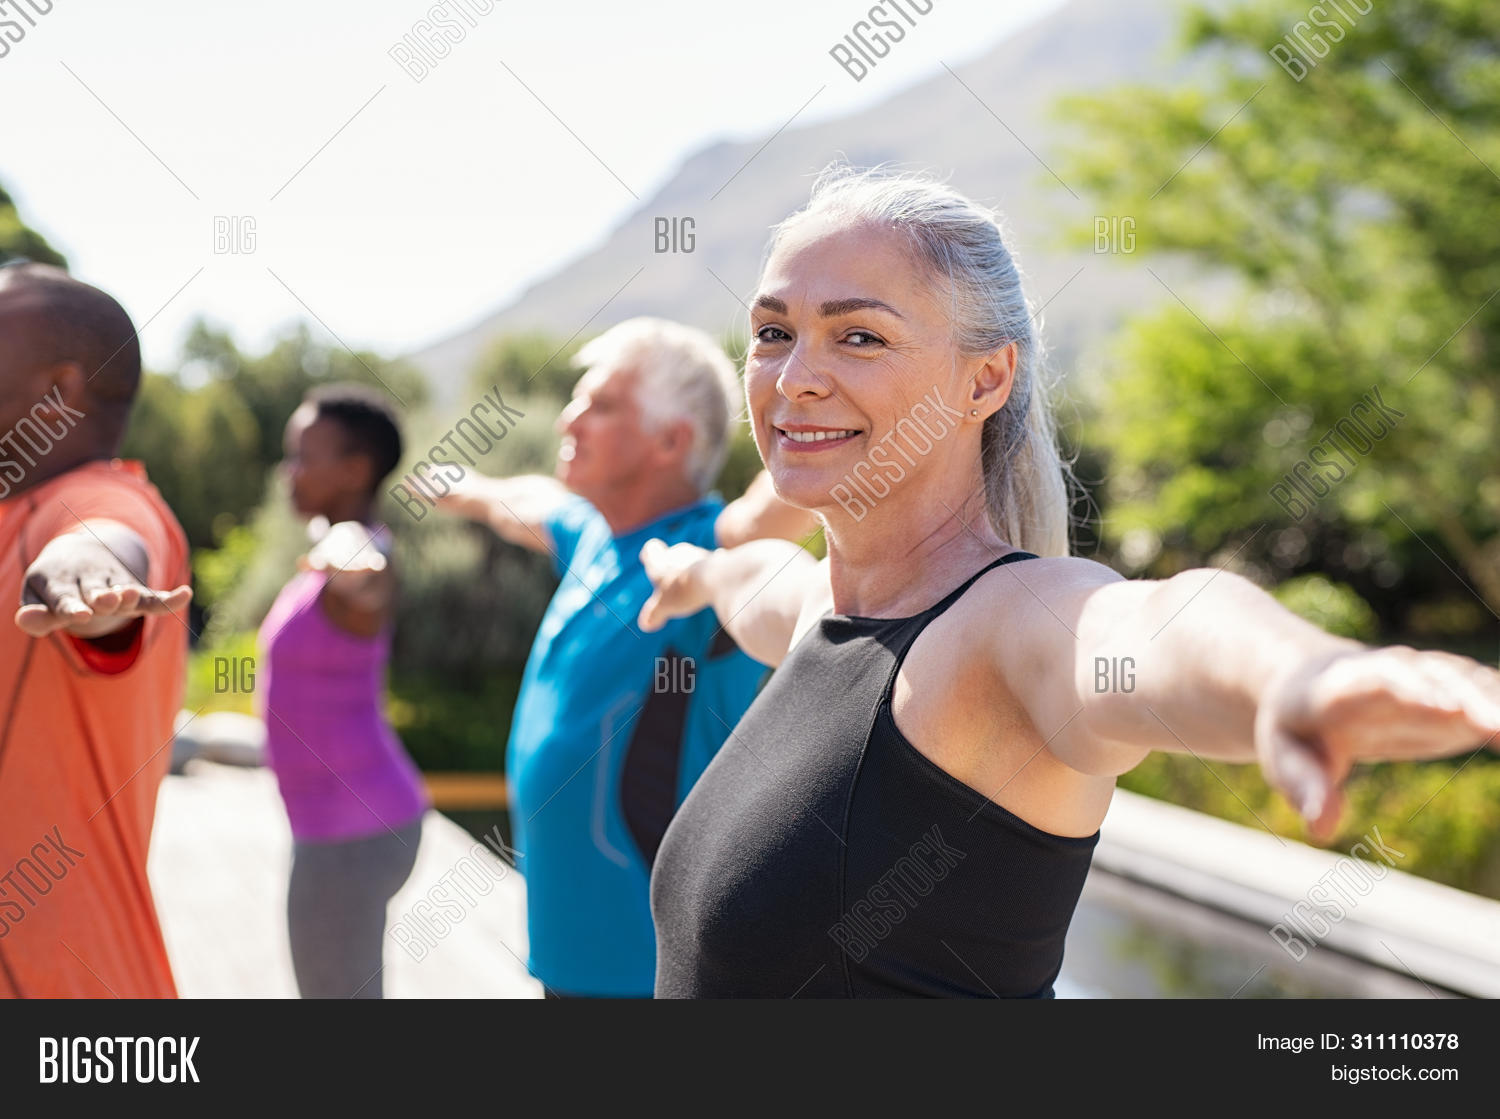 active,active seniors,aerobic,aerobics,arm,balance,body,carefree,class,confident,exercise,fit,fitness,fitness class,fitness training,group,happy,health,health care,healthy,lifestyle,looking at camera,mature,multi ethnic group,old,outdoor,outstretched,park,people,pilates,portrait,practicing,senior,senior care,senior man,senior woman,seniors activities,seniors exercising,seniors friends,smile,sport,stretch,stretching exercises,together,training,wellness,woman,women,workout,yoga